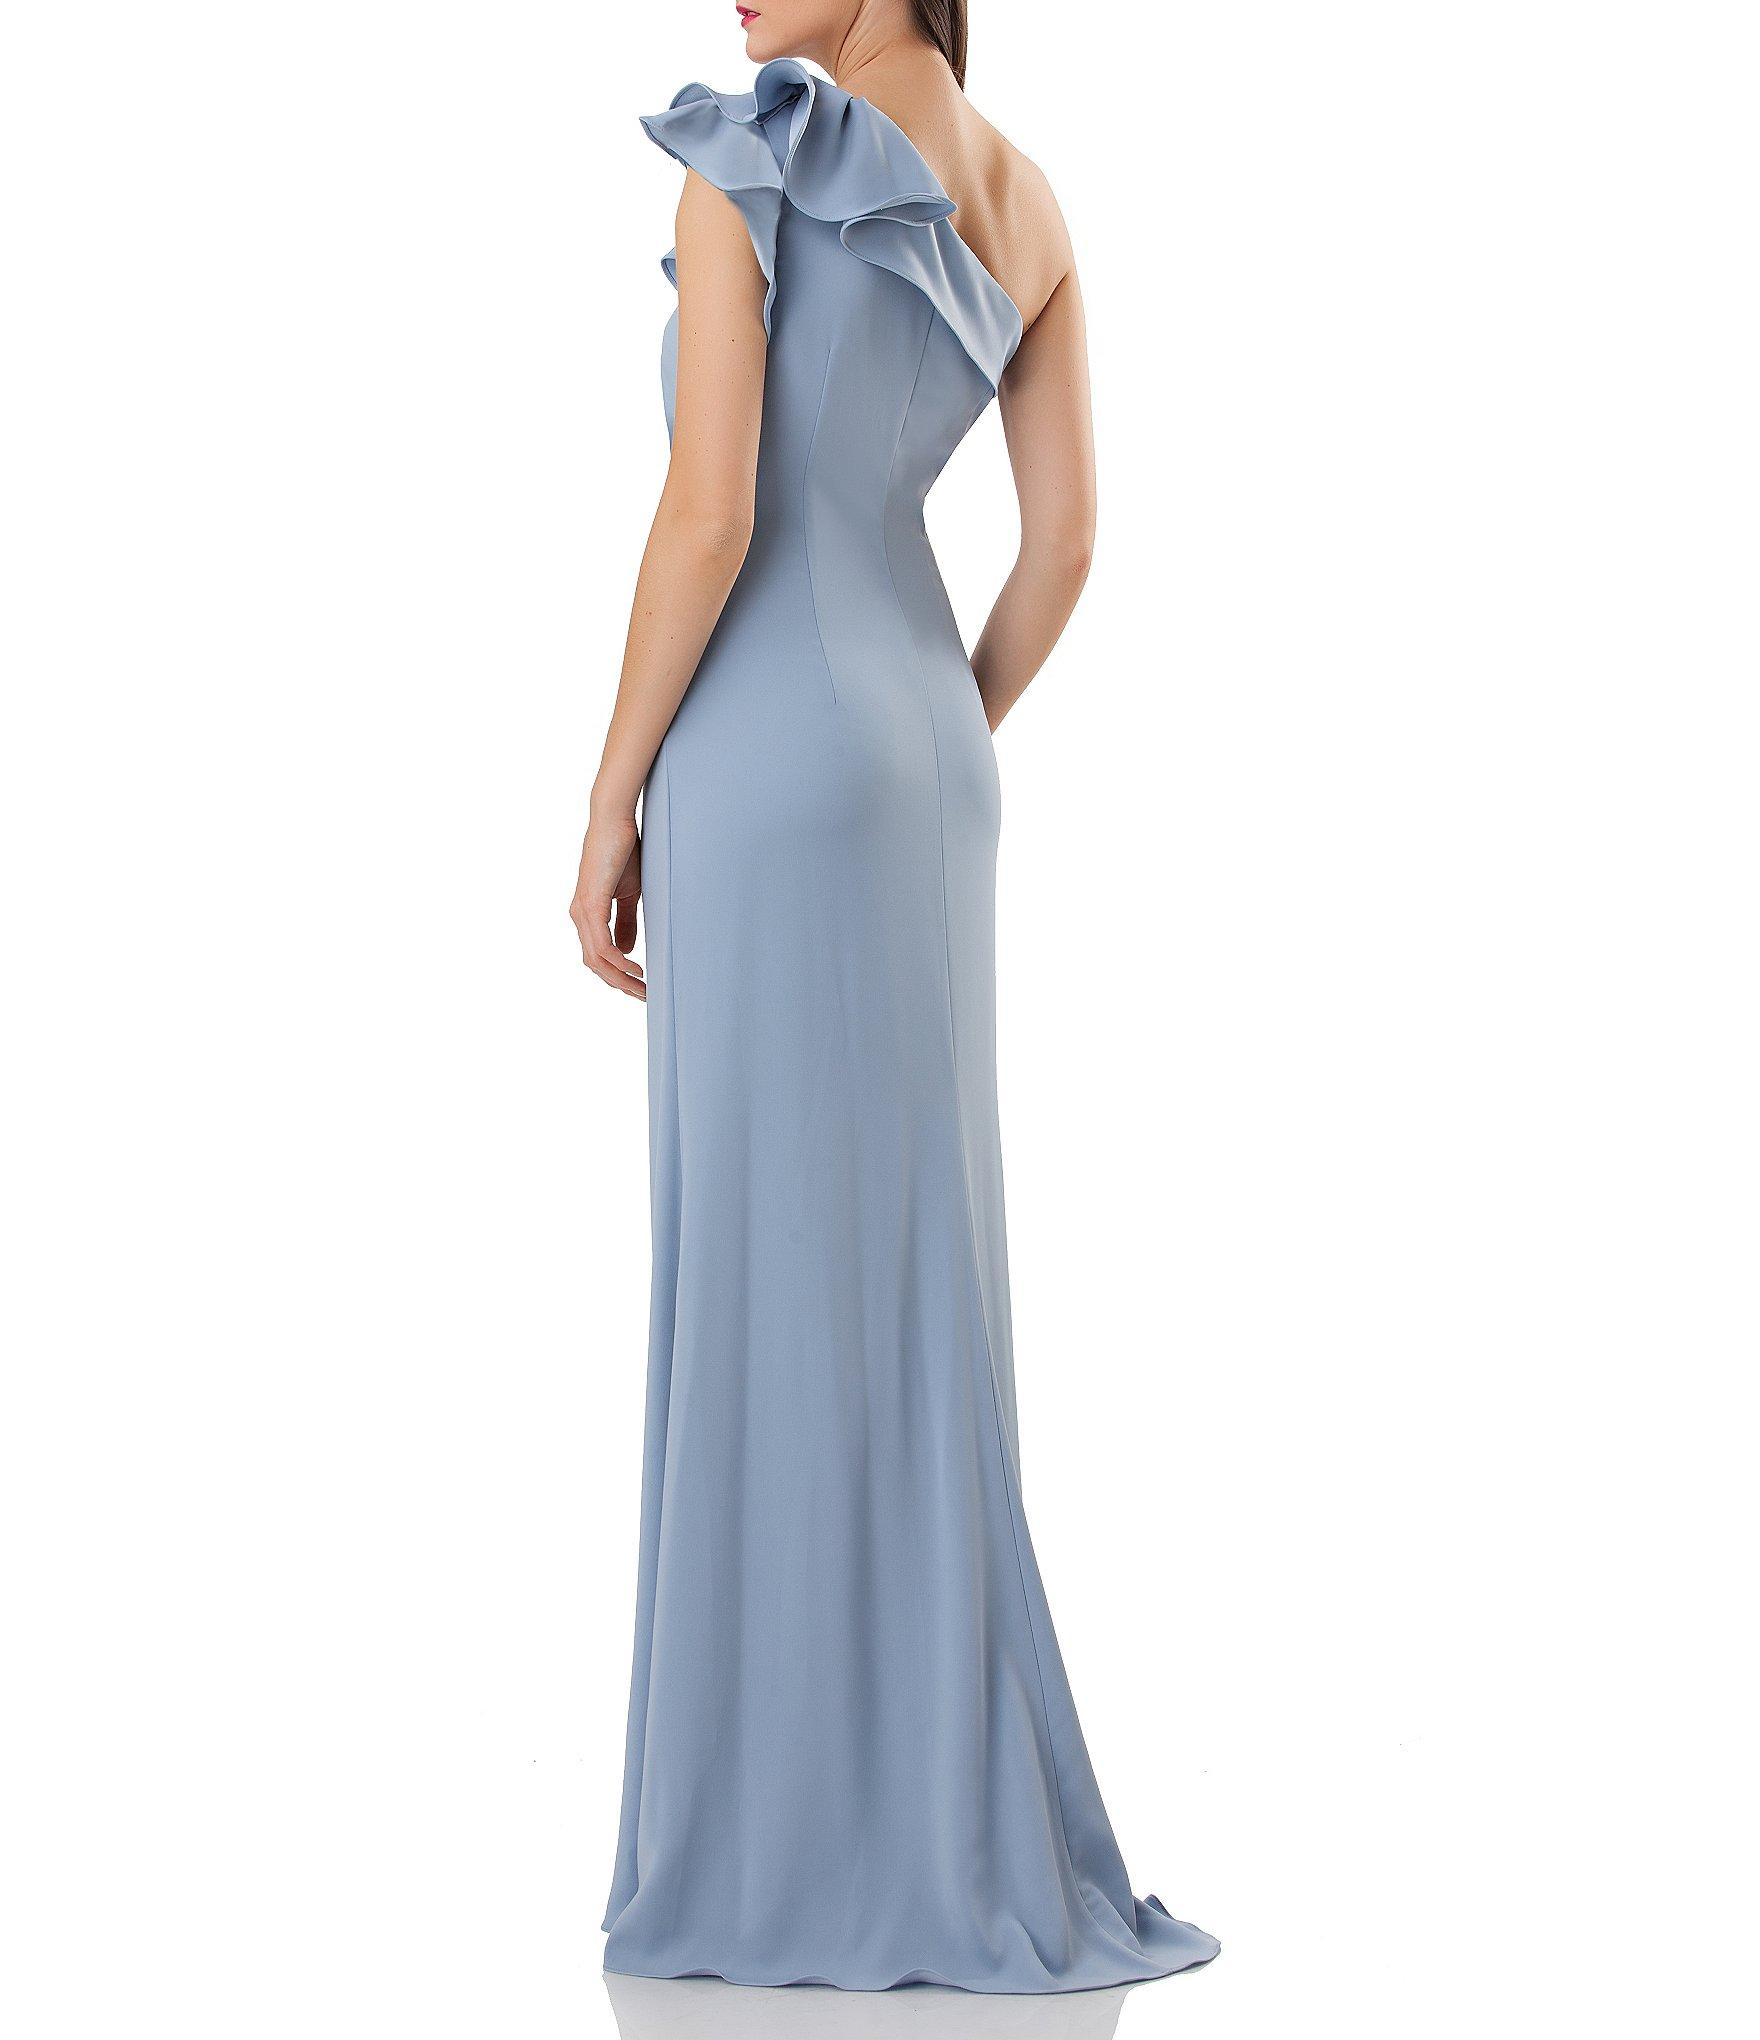 d1570258f3652 Carmen Marc Valvo - Blue Infusion One-shoulder Ruffled Crepe Gown - Lyst.  View fullscreen